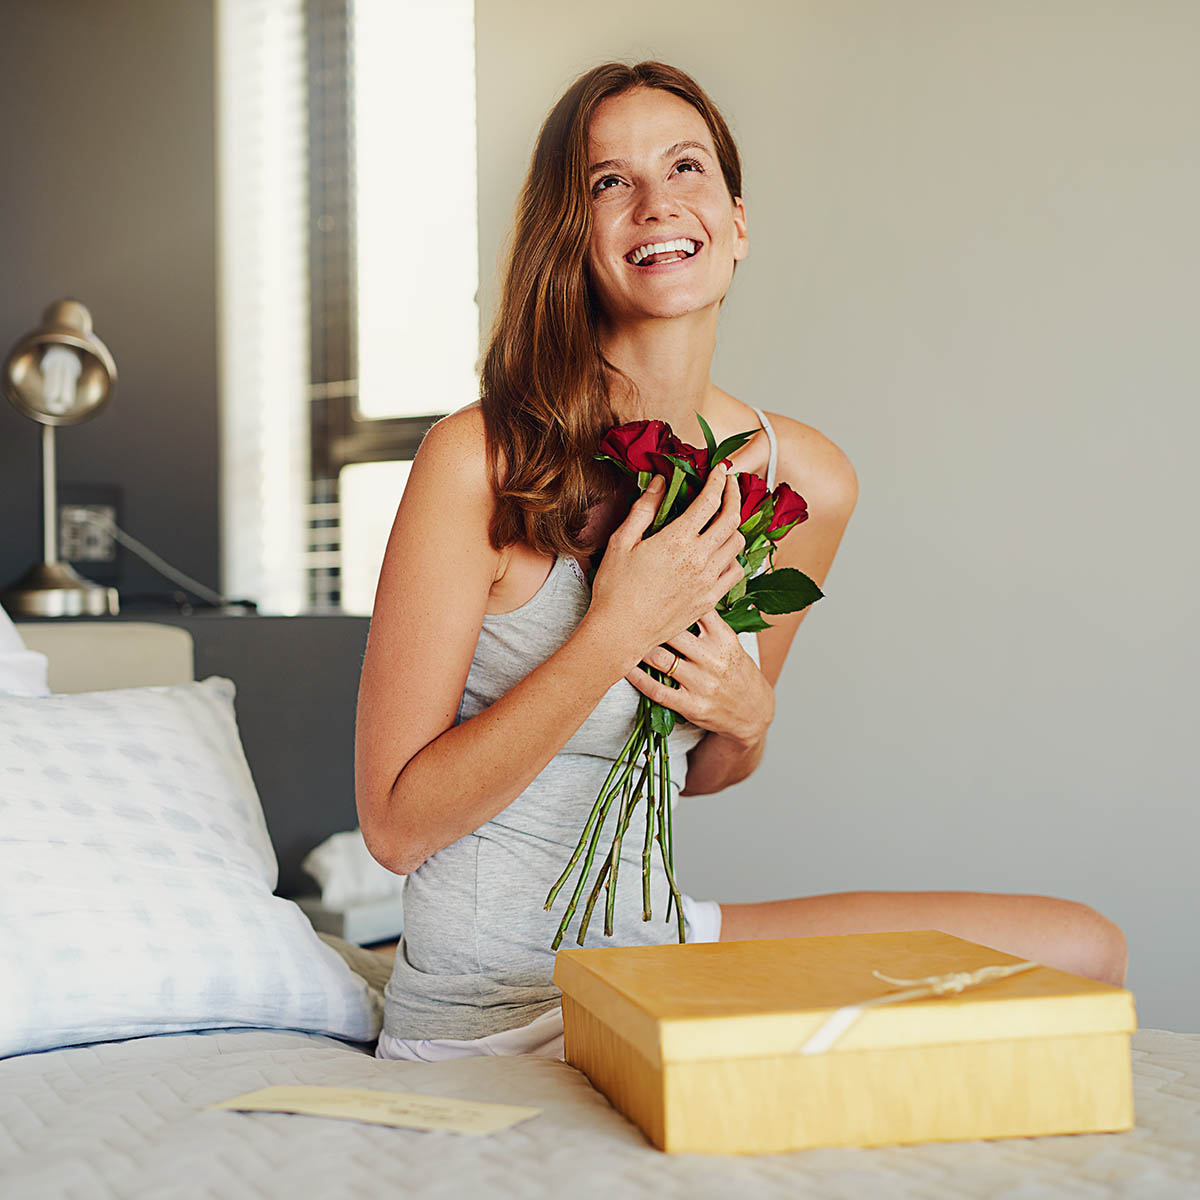 Shot of a woman opening a gift at home